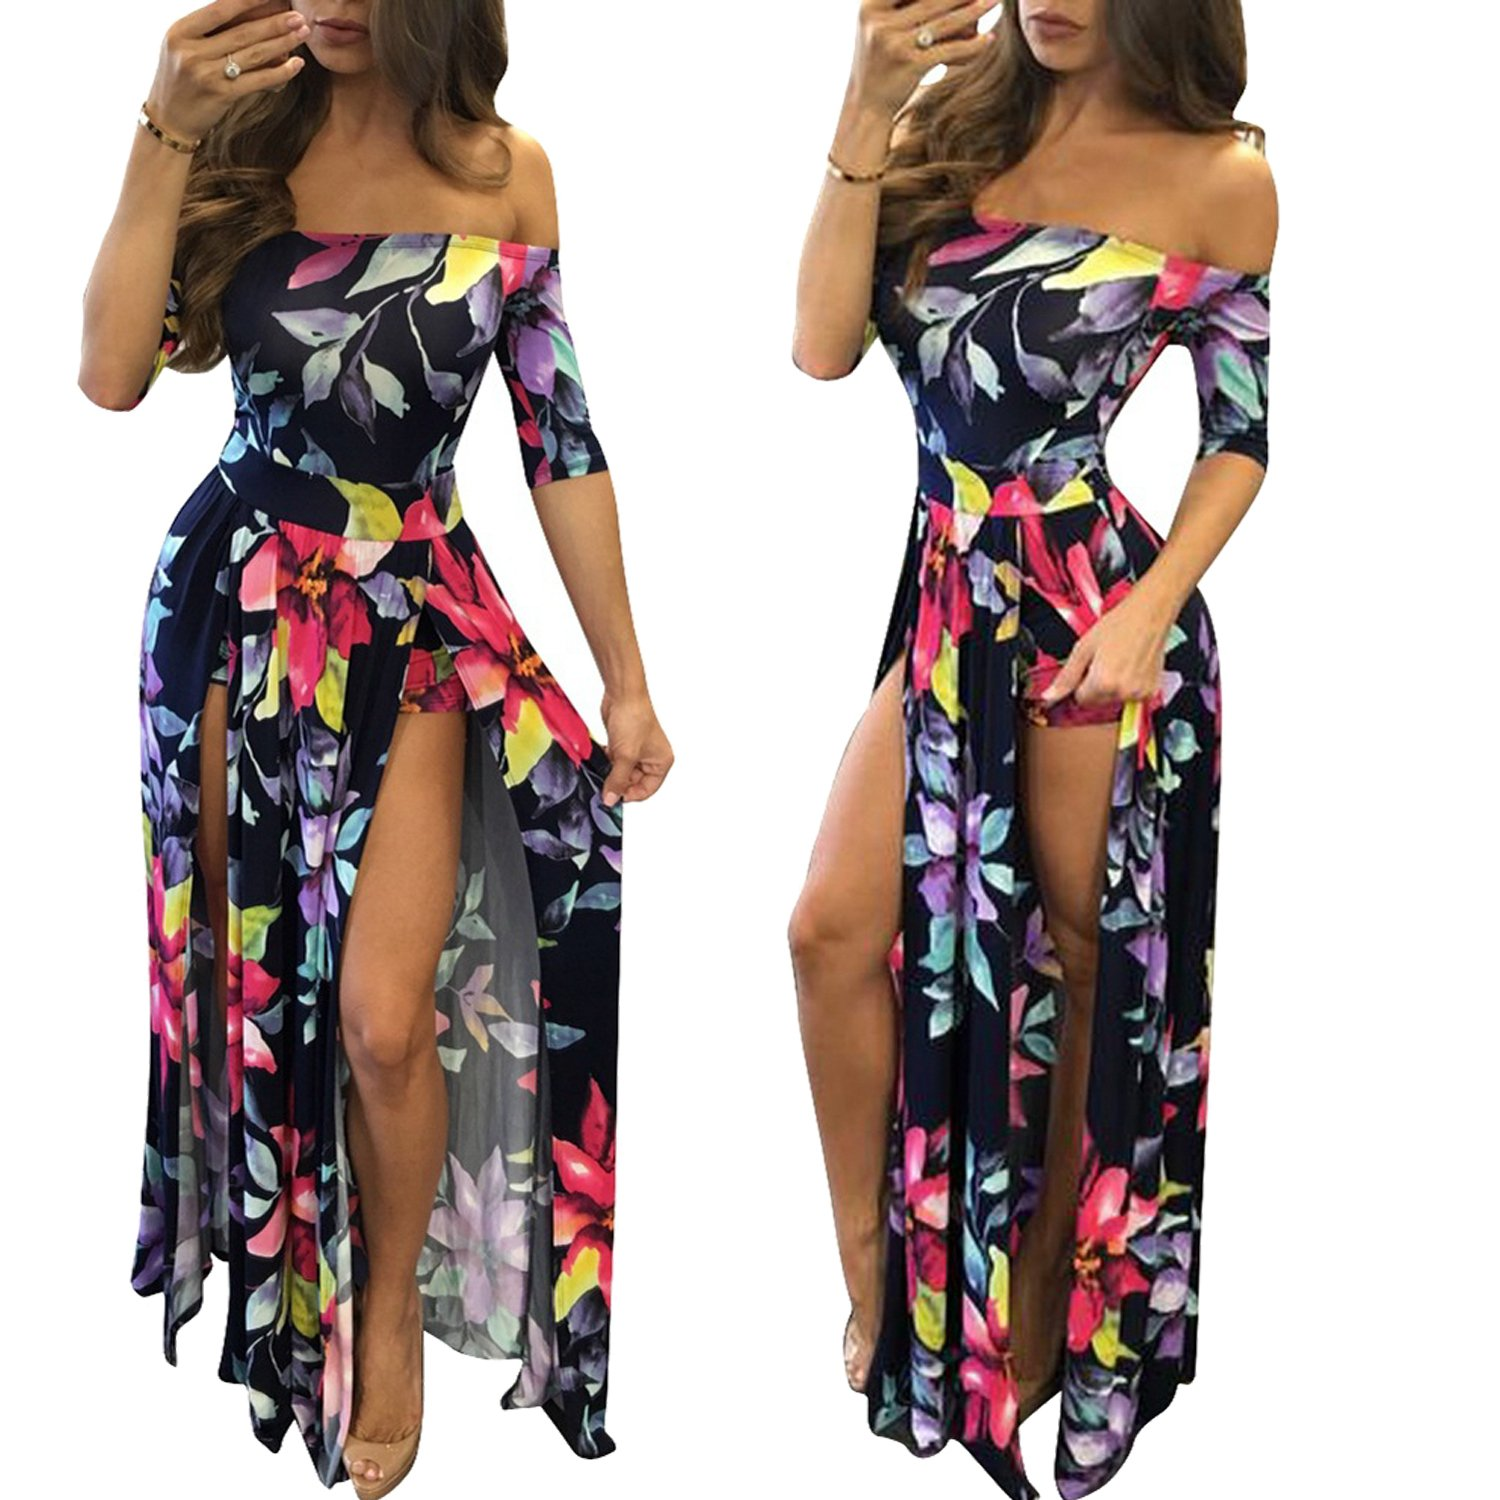 010bab4a61e1 Amazon.com  Romper Split Maxi Dress High Elasticity Floral Print Short  Jumpsuit Overlay Skirt for Summmer Party Beach S-5X  Clothing